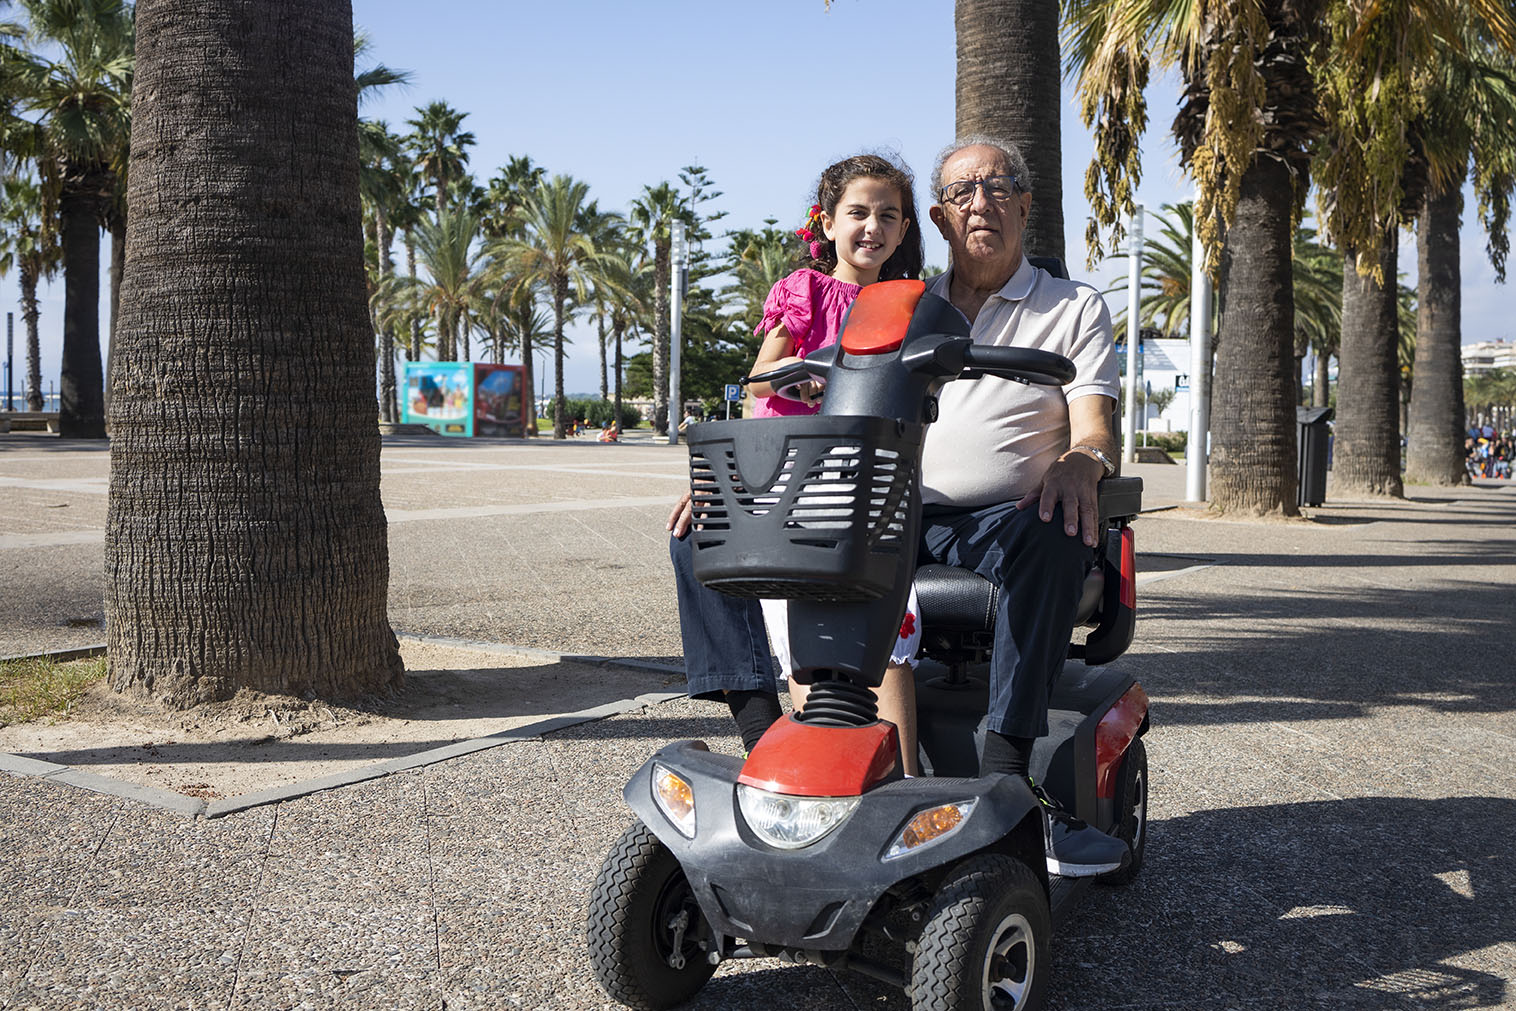 An older man sits on his mobility scooter with his granddaughter. They're on a footpath lined with palm trees.